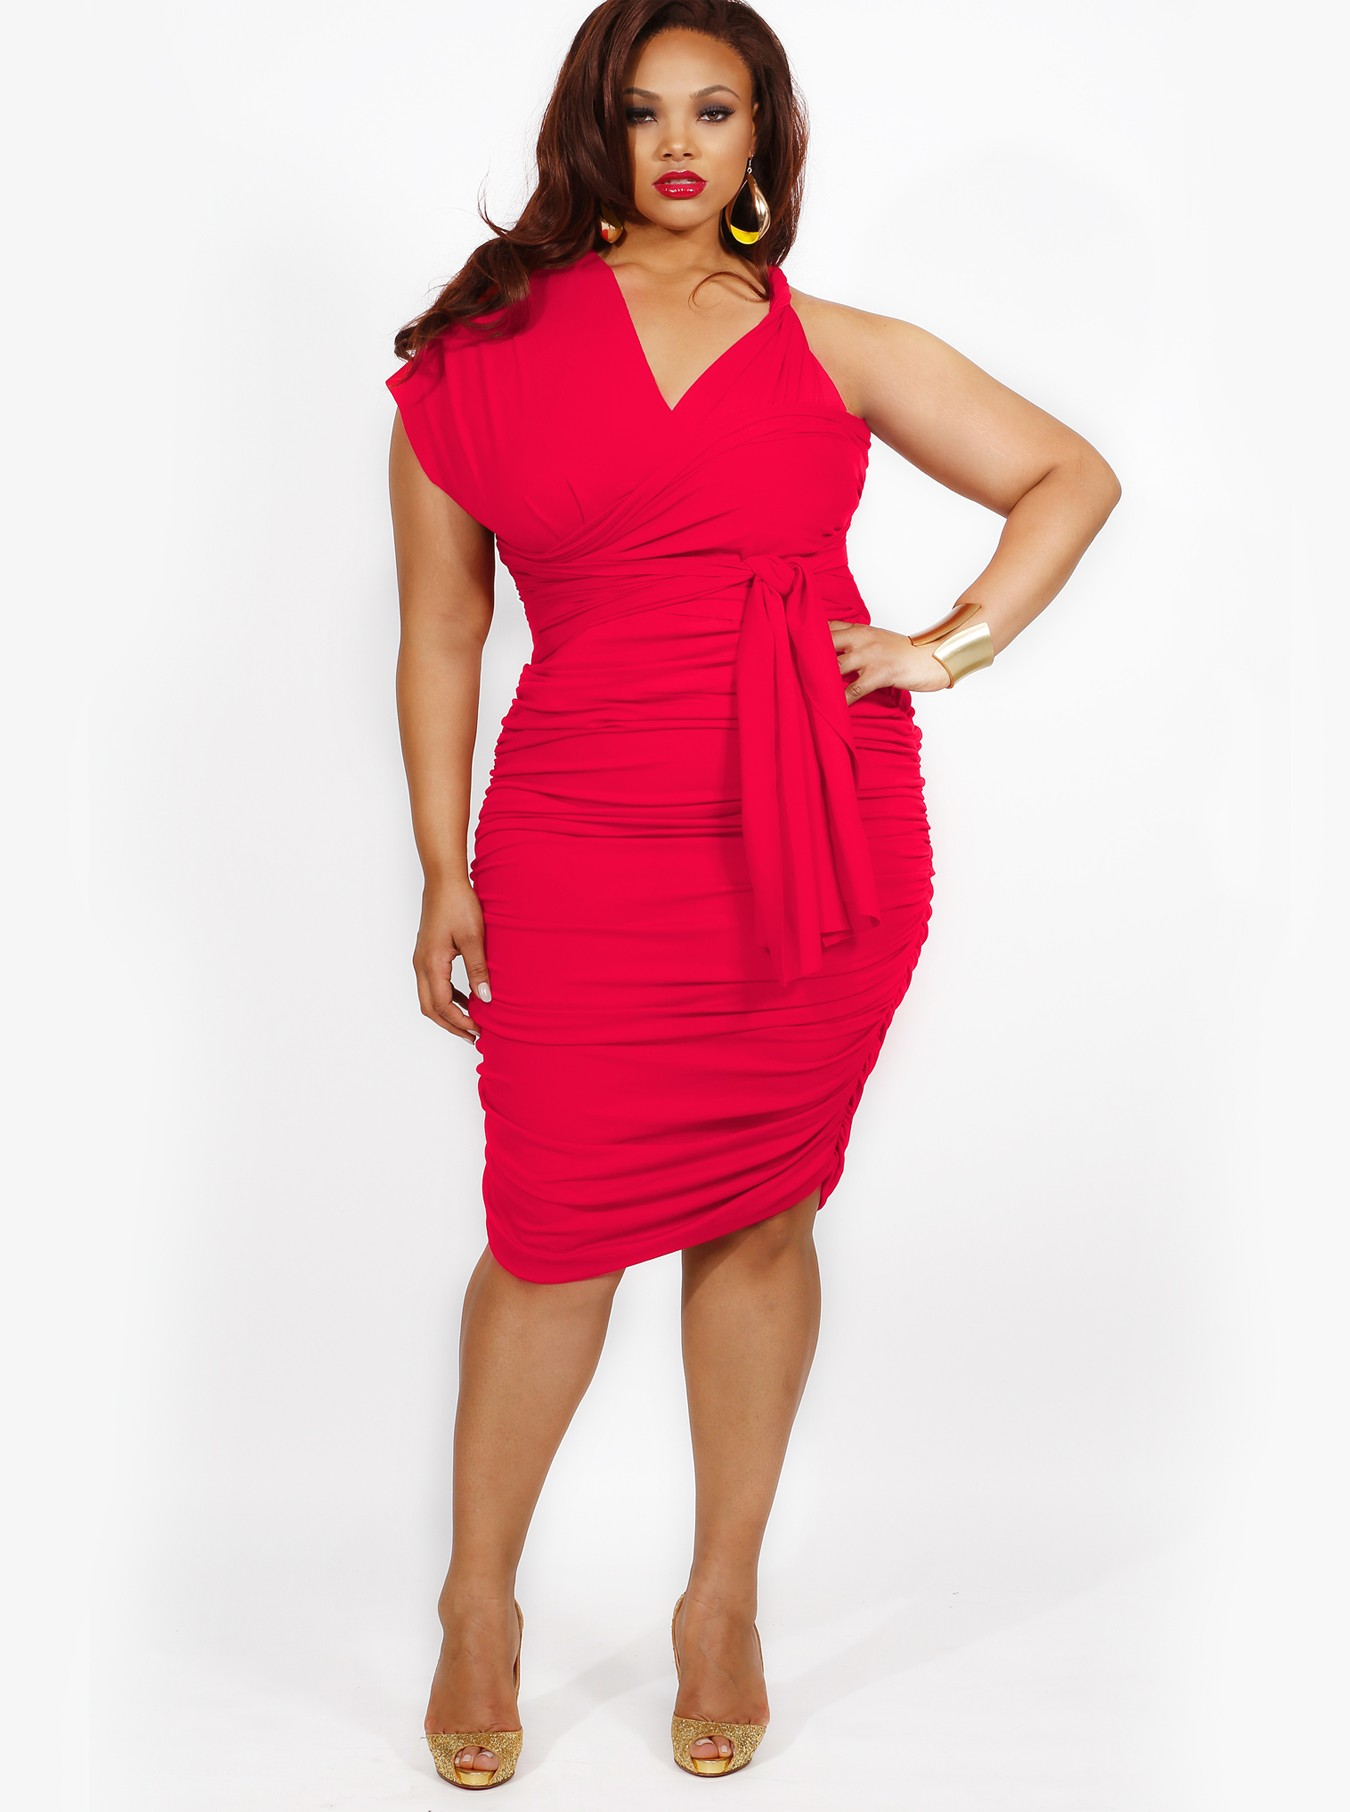 check out. Shop by Department. Kohl's Coupons; Women's Plus Size Dresses. Fit & Flare Dresses. Wear to Work Dresses. Party Dresses. Maxi Dresses. Evening Dresses. All Products () Sort By: Show: of 5. of 5 + sale. $ Original $ Plus Size Croft & Barrow® Smocked Tank Dress. sale. $ Original $ Plus Size Chaps.